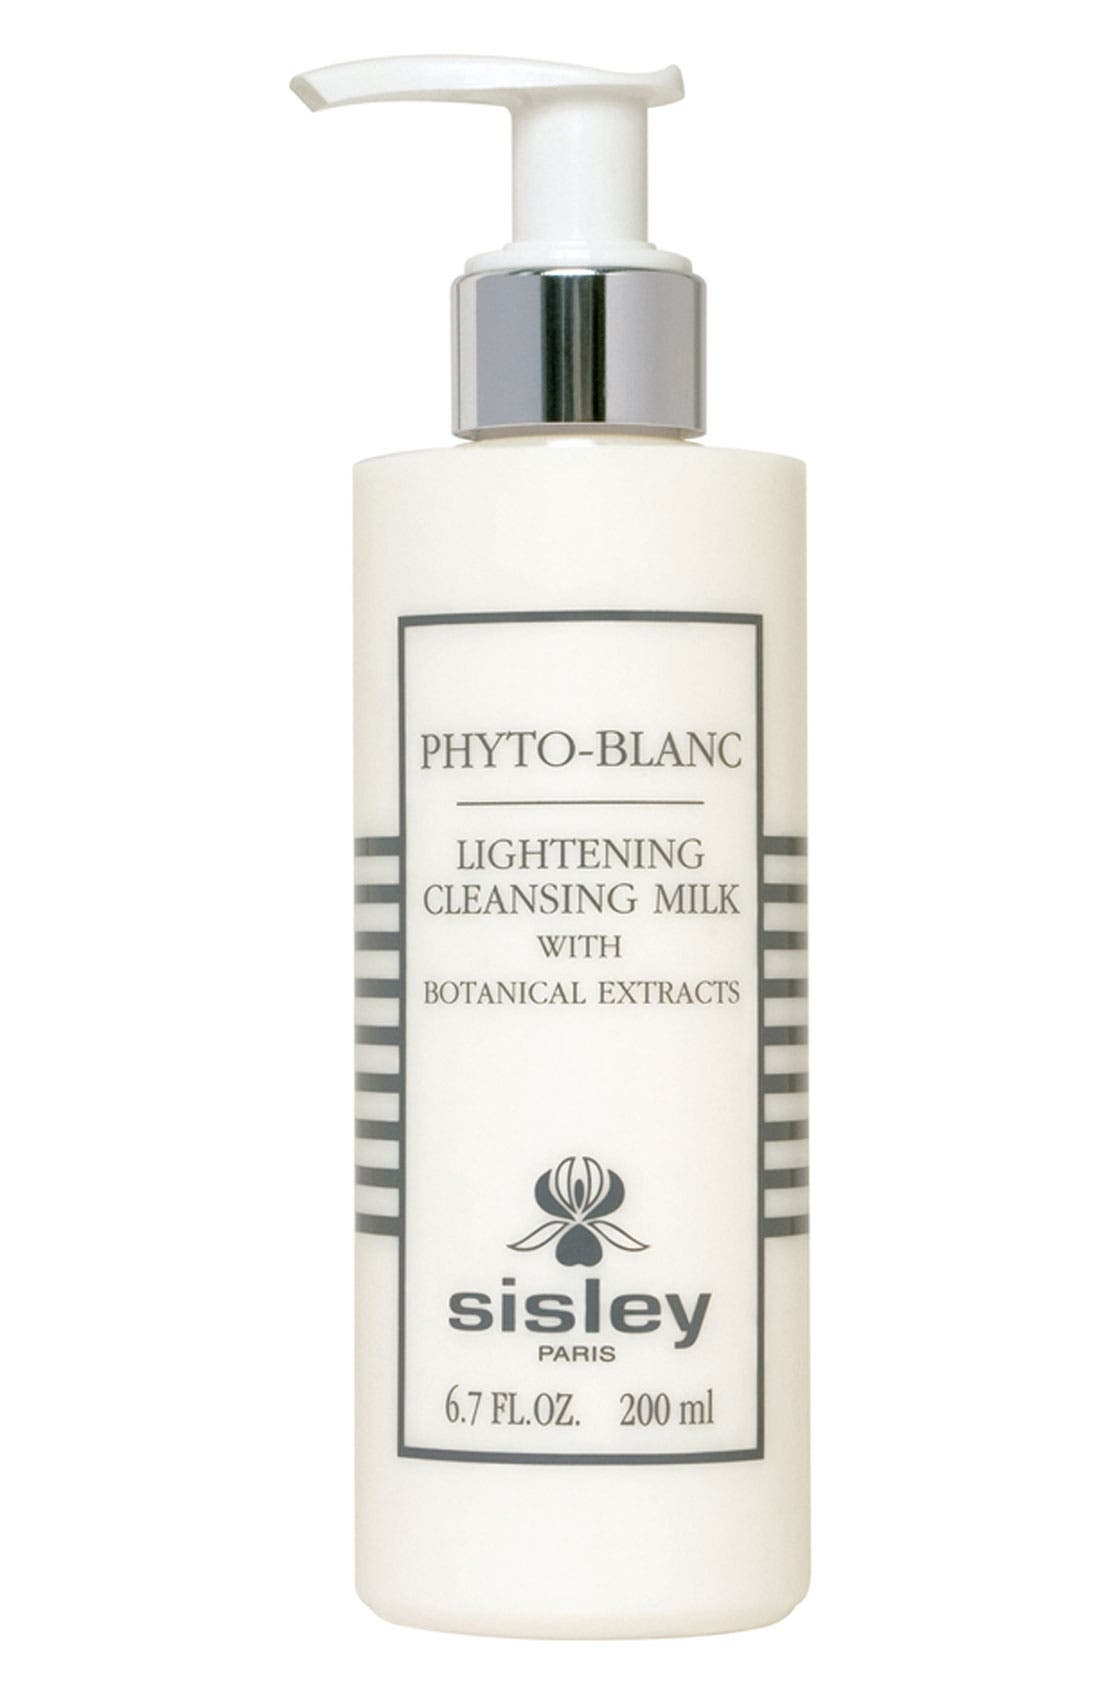 Sisley Paris Phyto-Blanc Lightening Cleansing Milk with Botanical Extracts